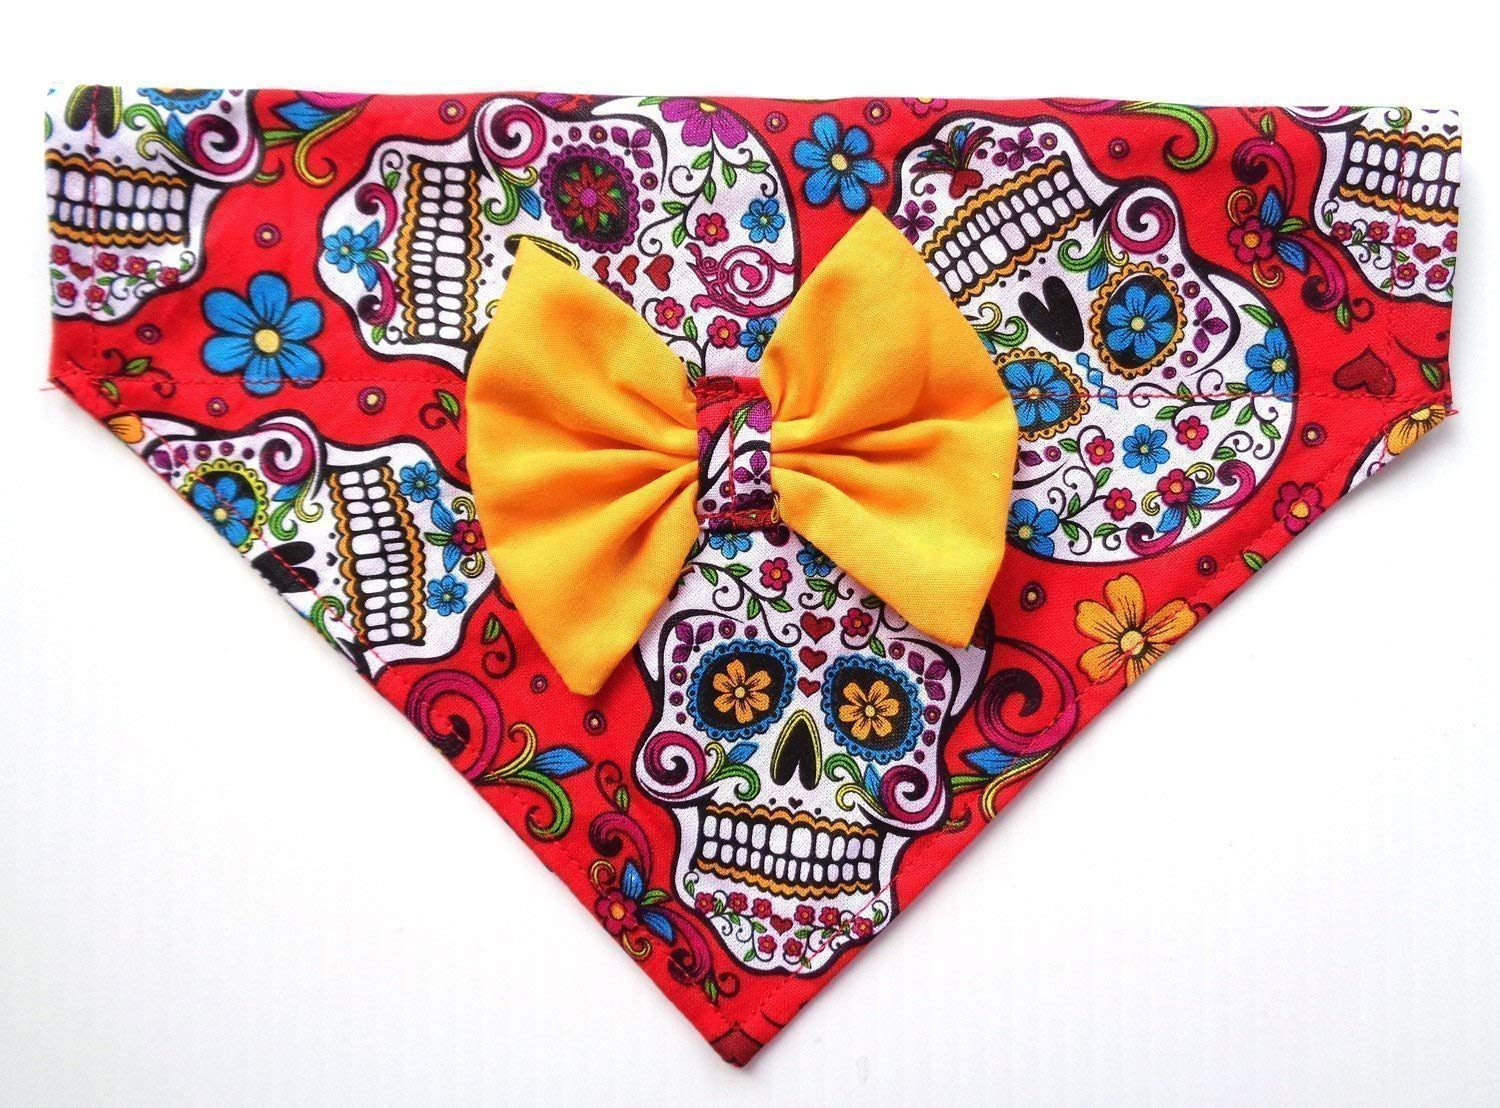 2 in 1 Bow and Bandanna Sugar Skull Day of the Dead Calavera Cinco de Mayo Print, Over the Collar Slip Thru Thread Through Style Neckwear Petwear